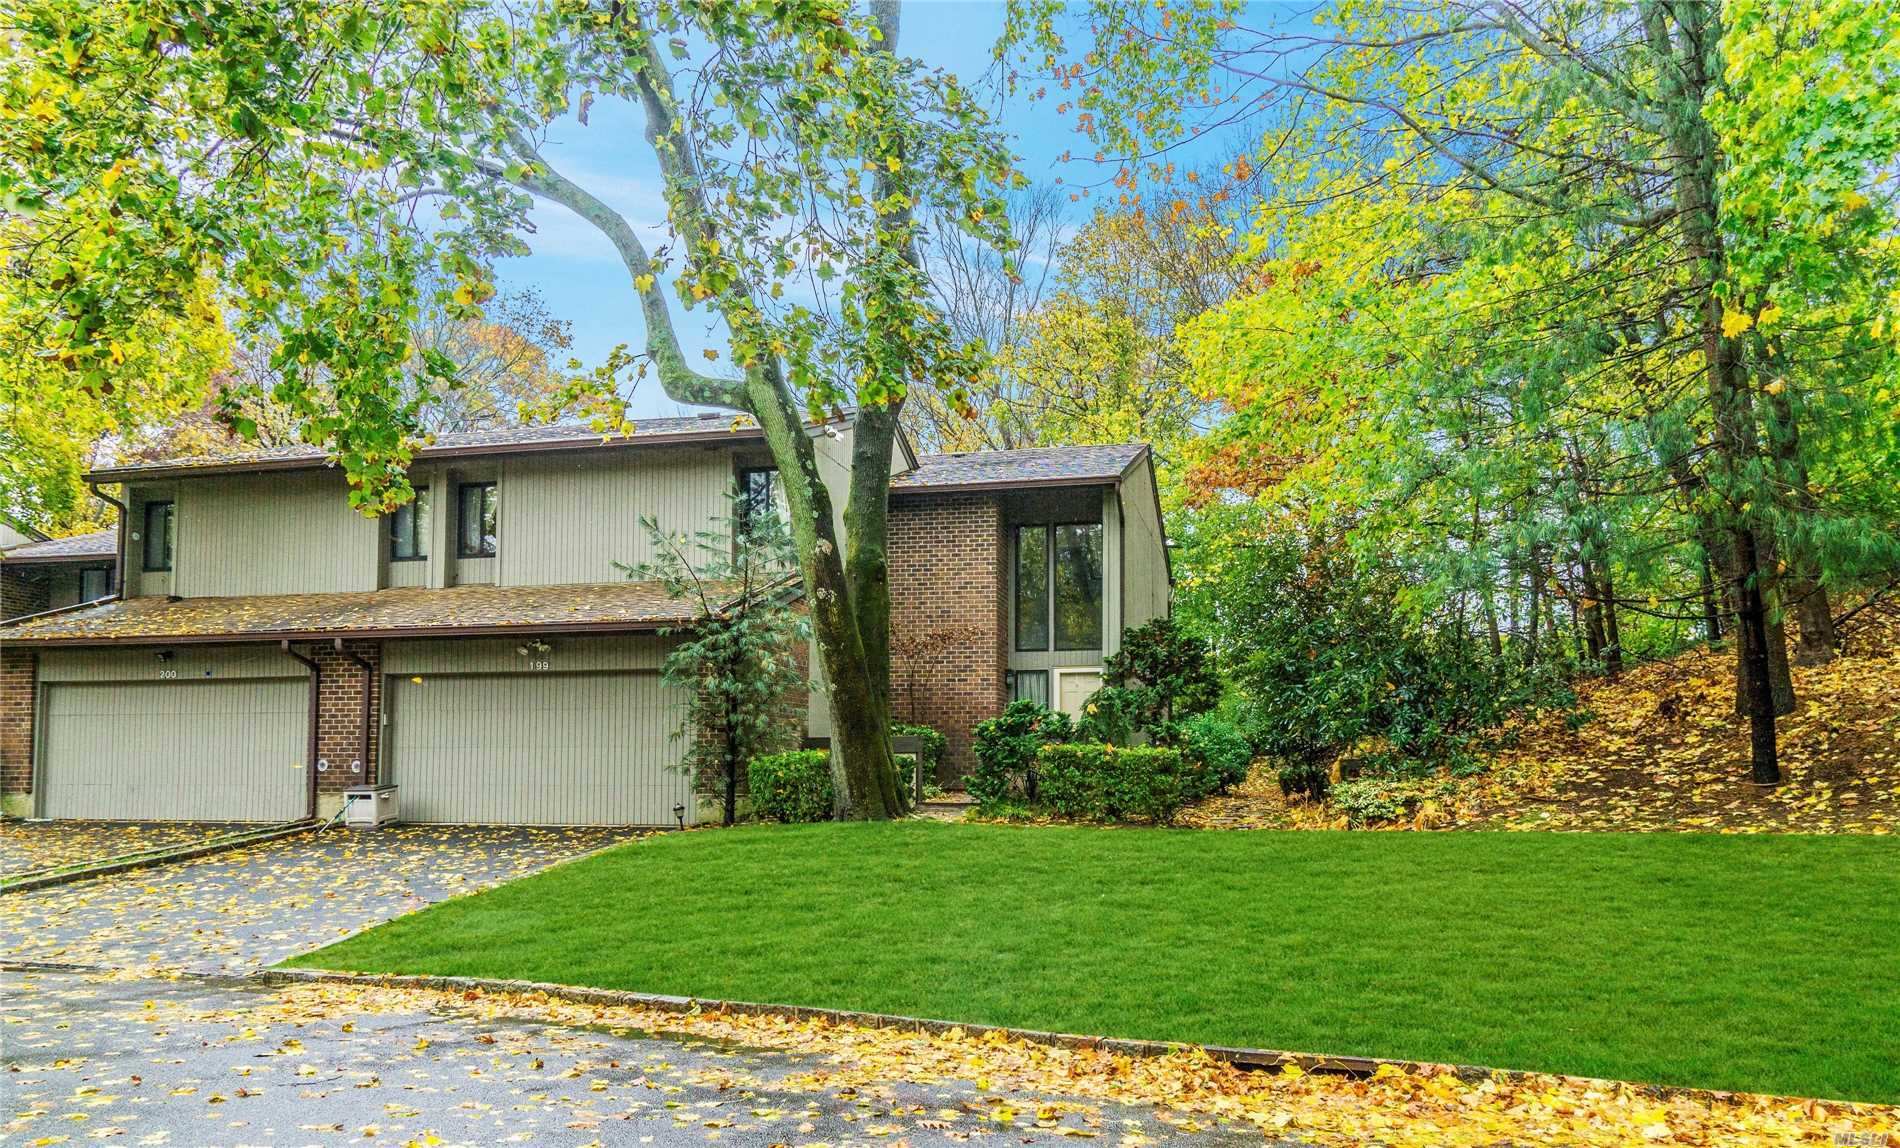 Totally Renovated With Custom Kitchen And Baths, Stone Walled Fireplace, Wood Floors, New Heating And Cooling Systems, Stainless Appliances, Surround Sound, In And Outdoors, Central Vac., Limestone Powder Room. With An Extended Deck In A Private Cu D Sac Location With A Picturesque Setting.